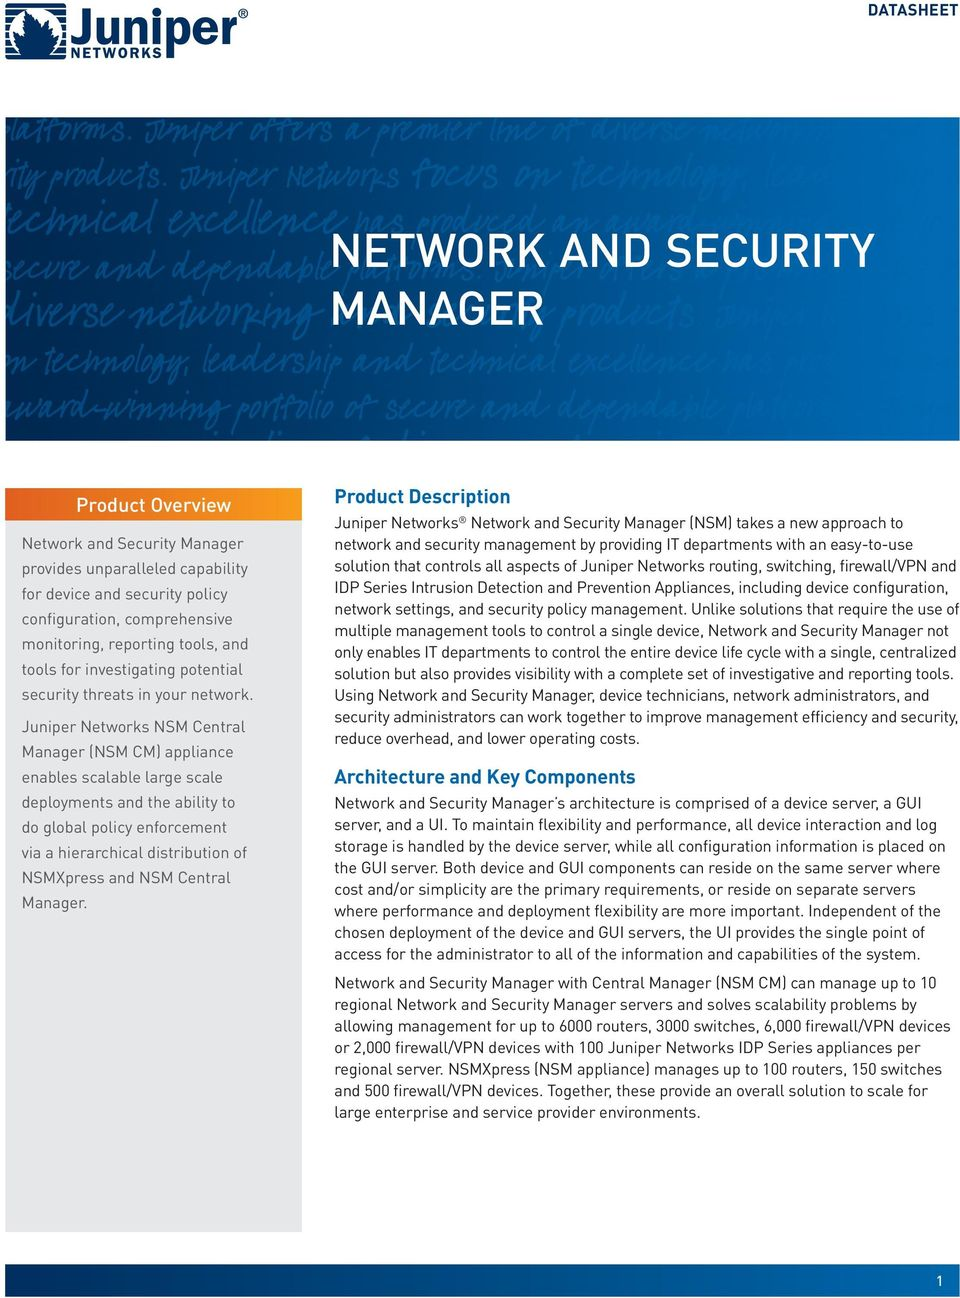 Juniper Networks NSM Central Manager (NSM CM) appliance enables scalable large scale deployments and the ability to do global policy enforcement via a hierarchical distribution of NSMXpress and NSM